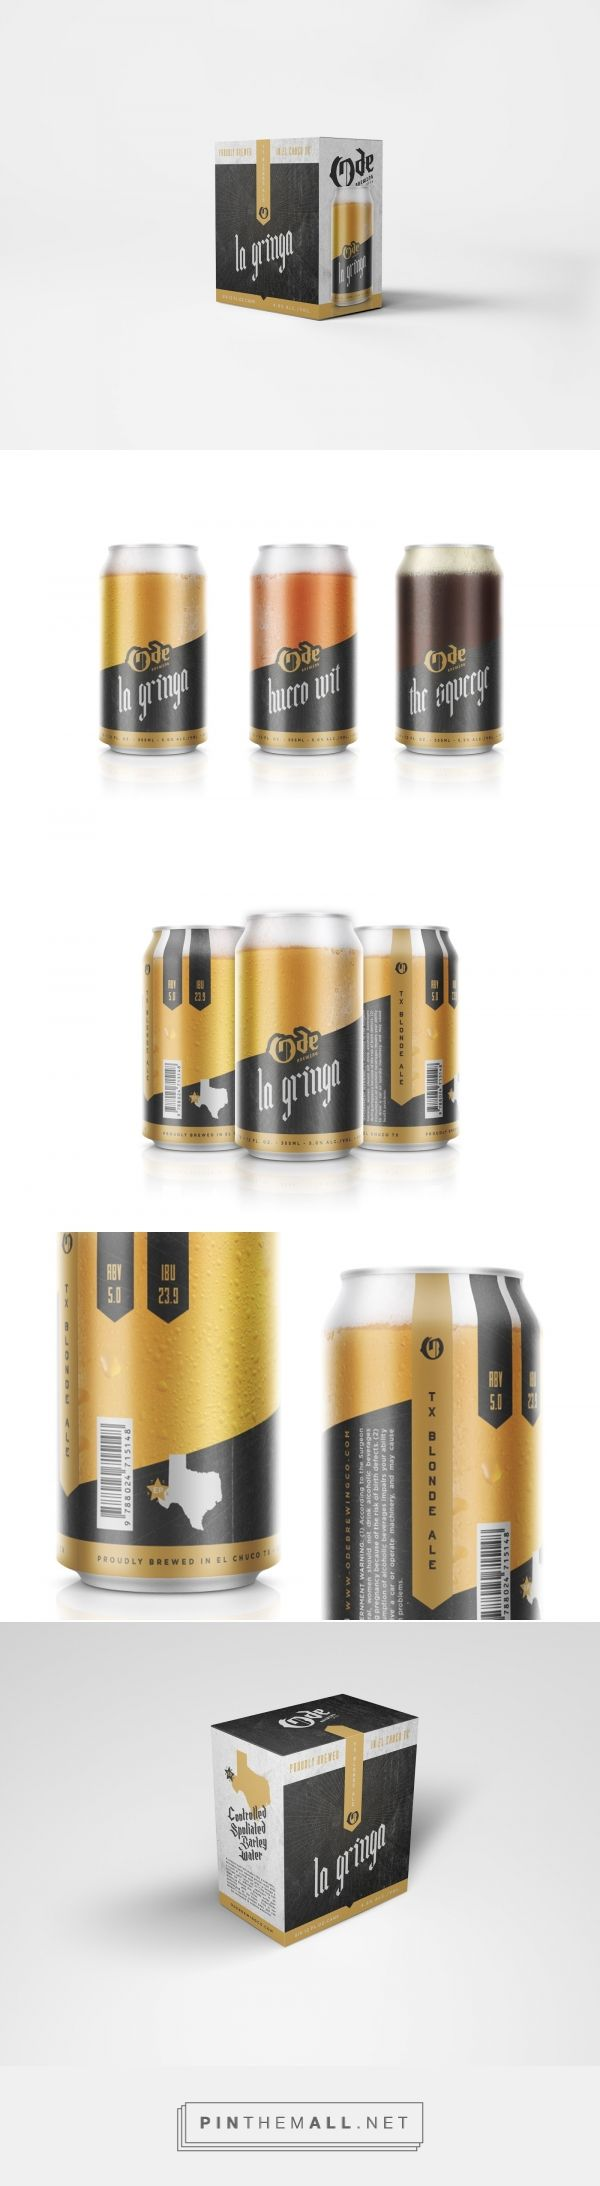 Ode Brewing (Concept) - Packaging of the World - Creative Package Design Gallery - http://www.packagingoftheworld.com/2017/06/ode-brewing-concept.html - created via https://pinthemall.net